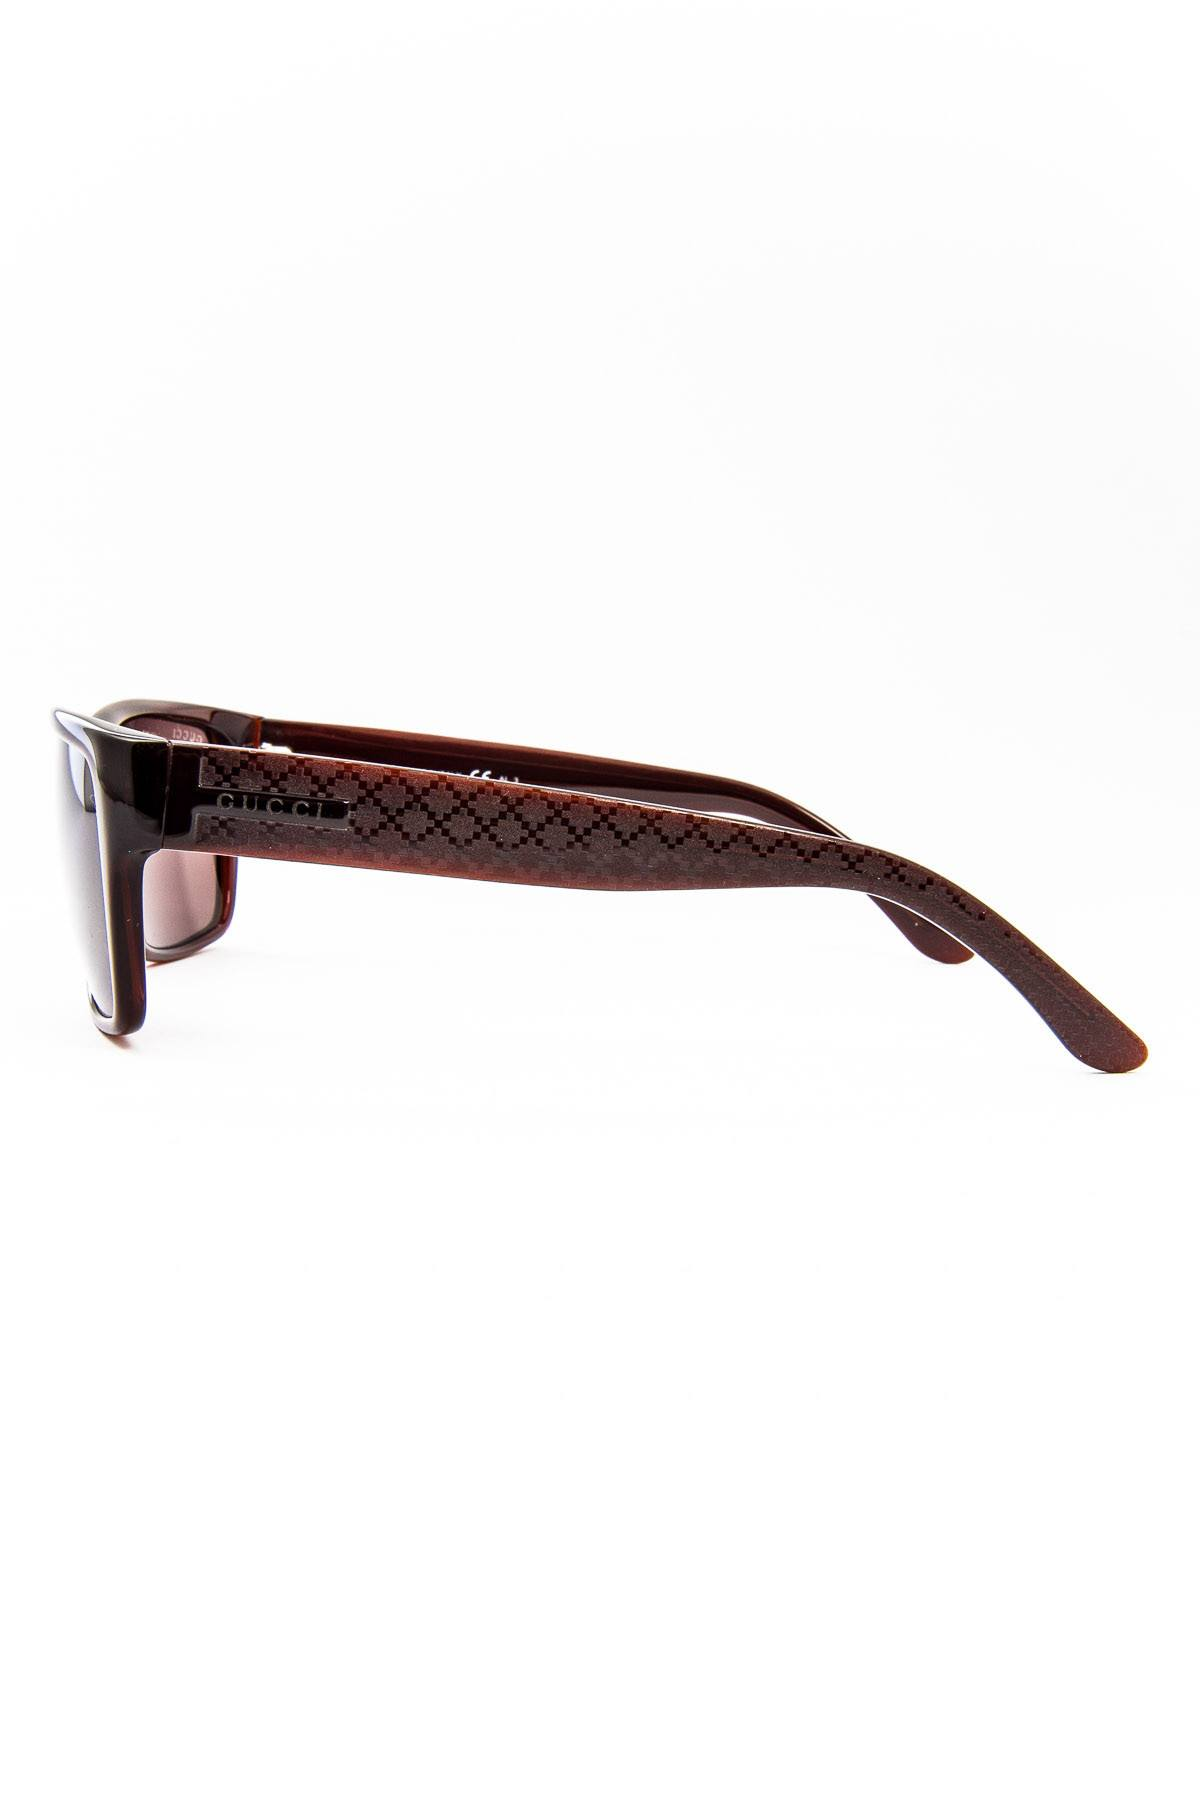 07302eea944 Sunglasses - Gucci 1000 S Dark Olive Sunglasses